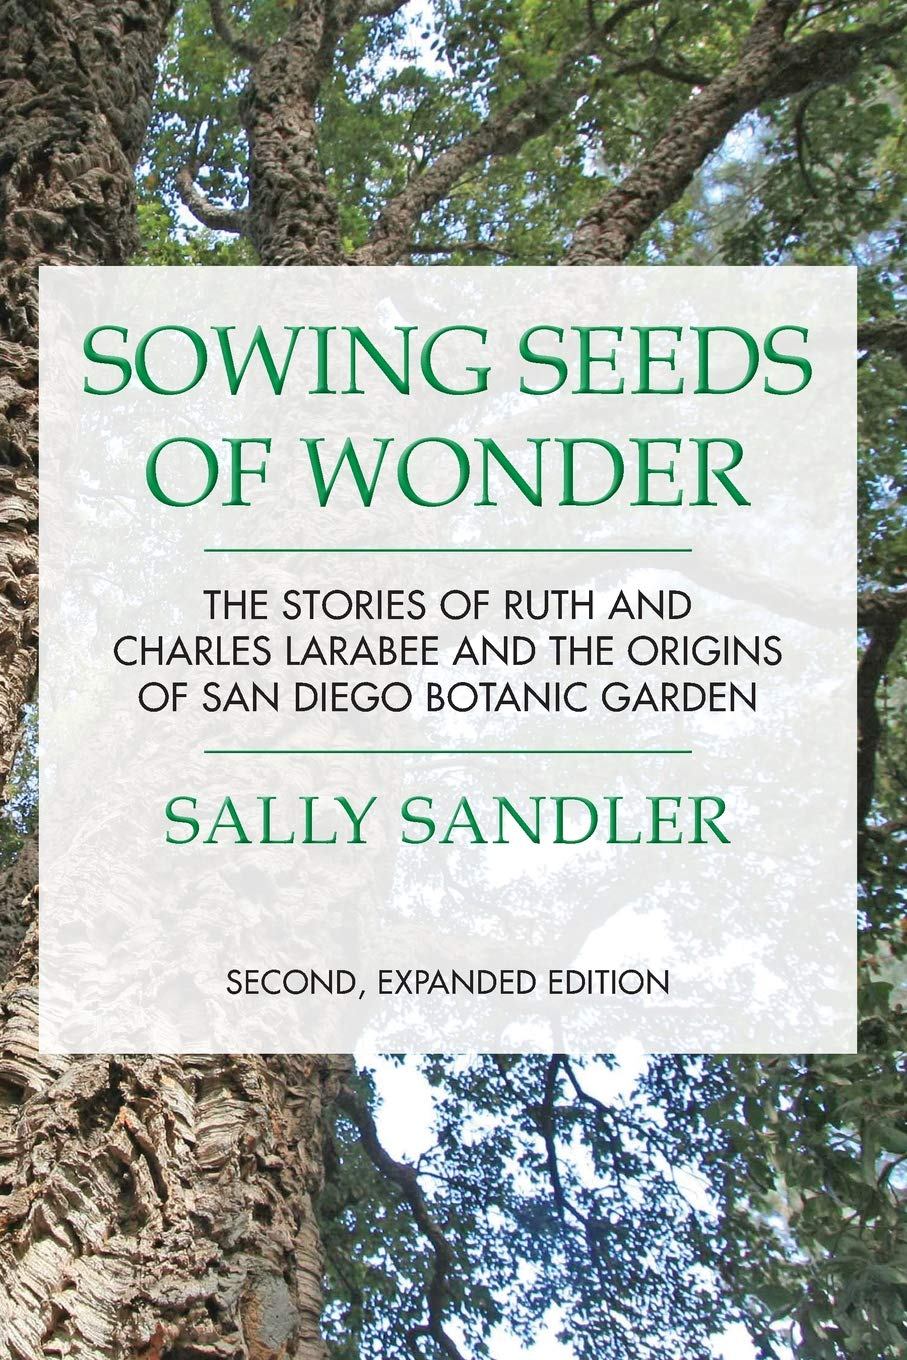 Sowing Seeds Of Wonder The Stories Of Ruth And Charles Larabee And The Origins Of San Diego Botanic Garden Amazon Co Uk Sandler Sally 9781530177202 Books